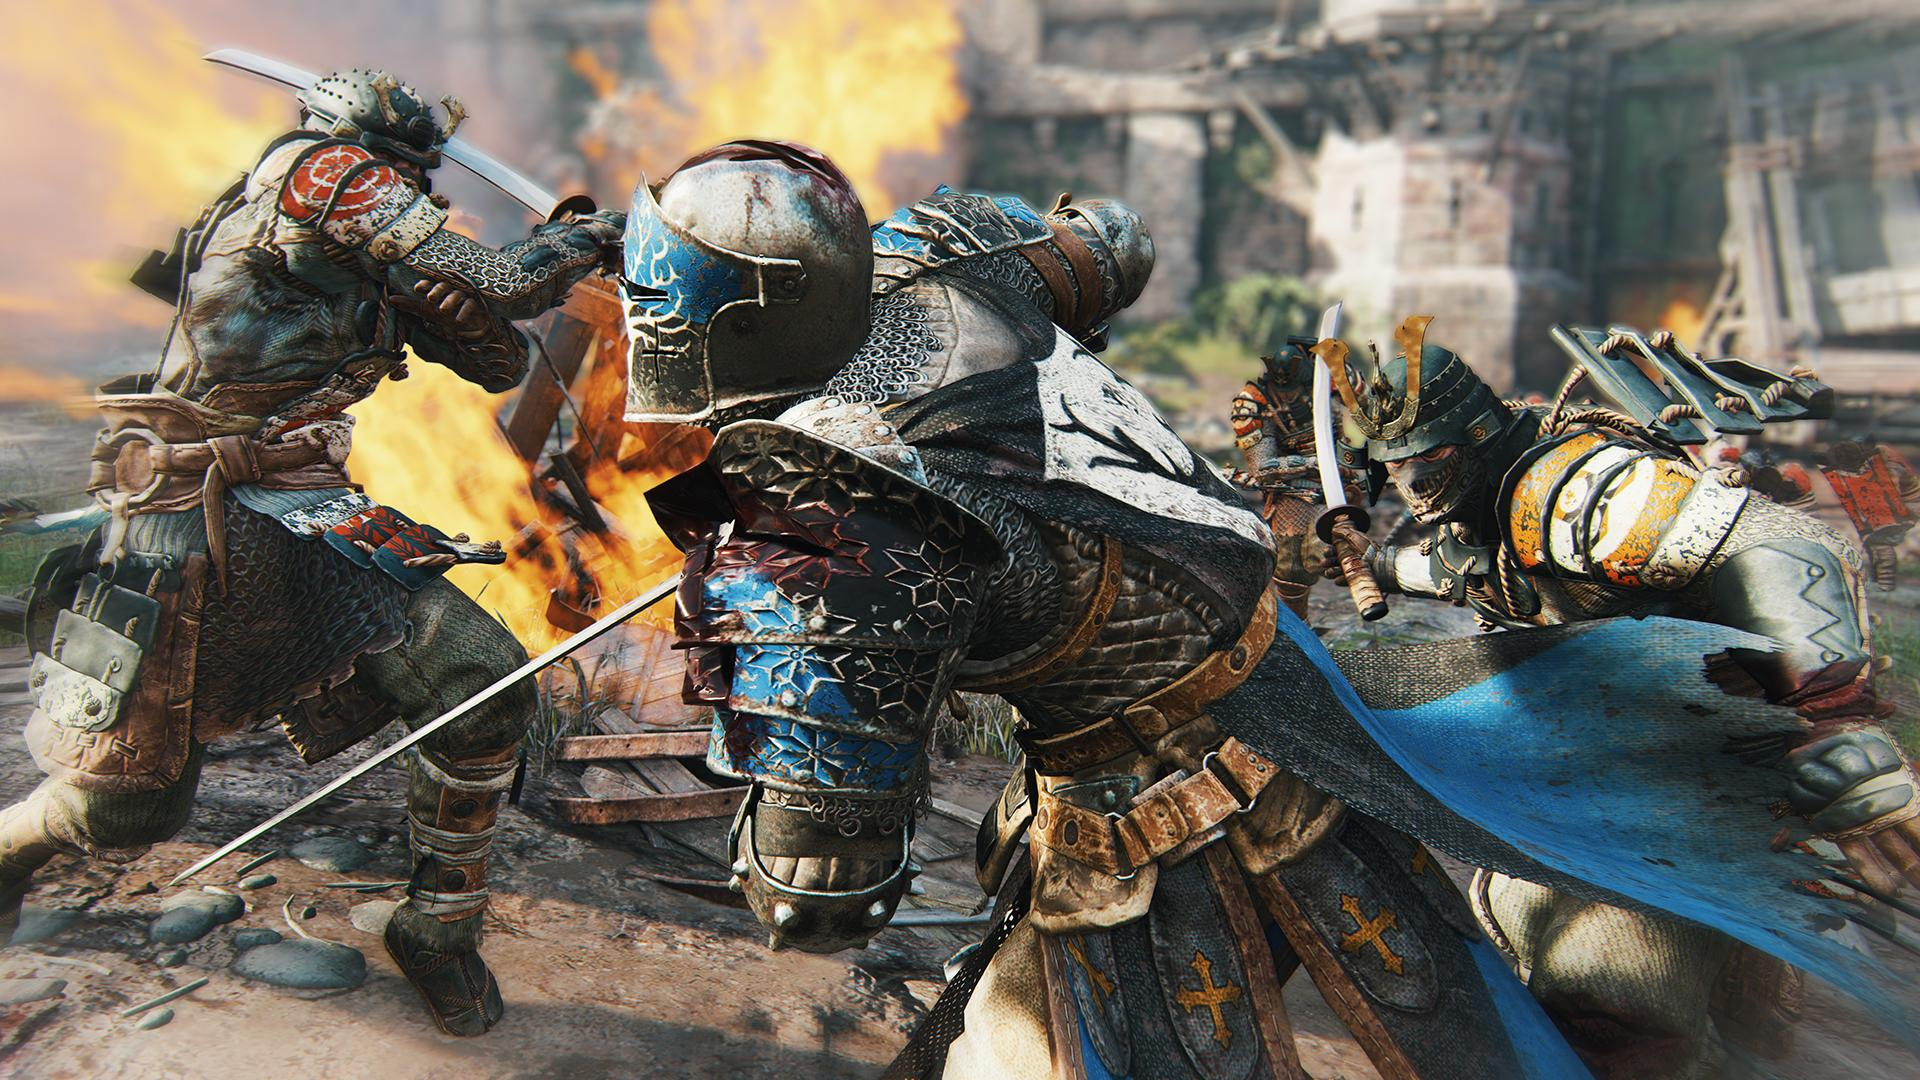 For Honor Review: Challenging Combat System Let Down by Technical Issues